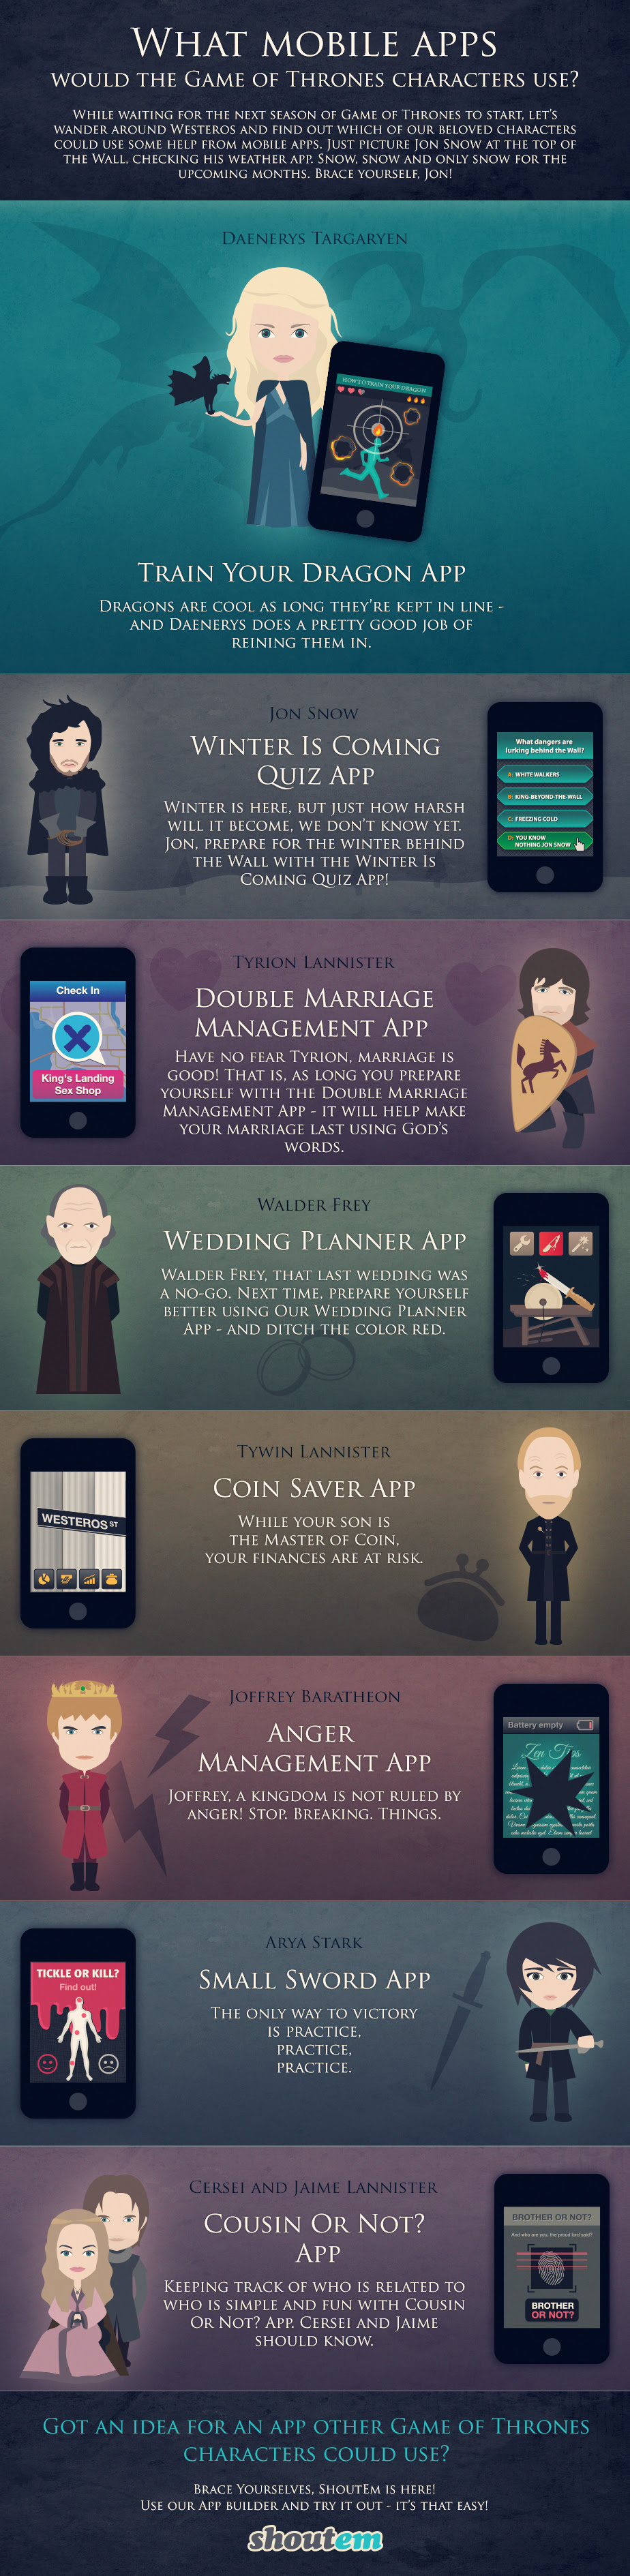 Infographic: Game of Thrones characters using mobile apps